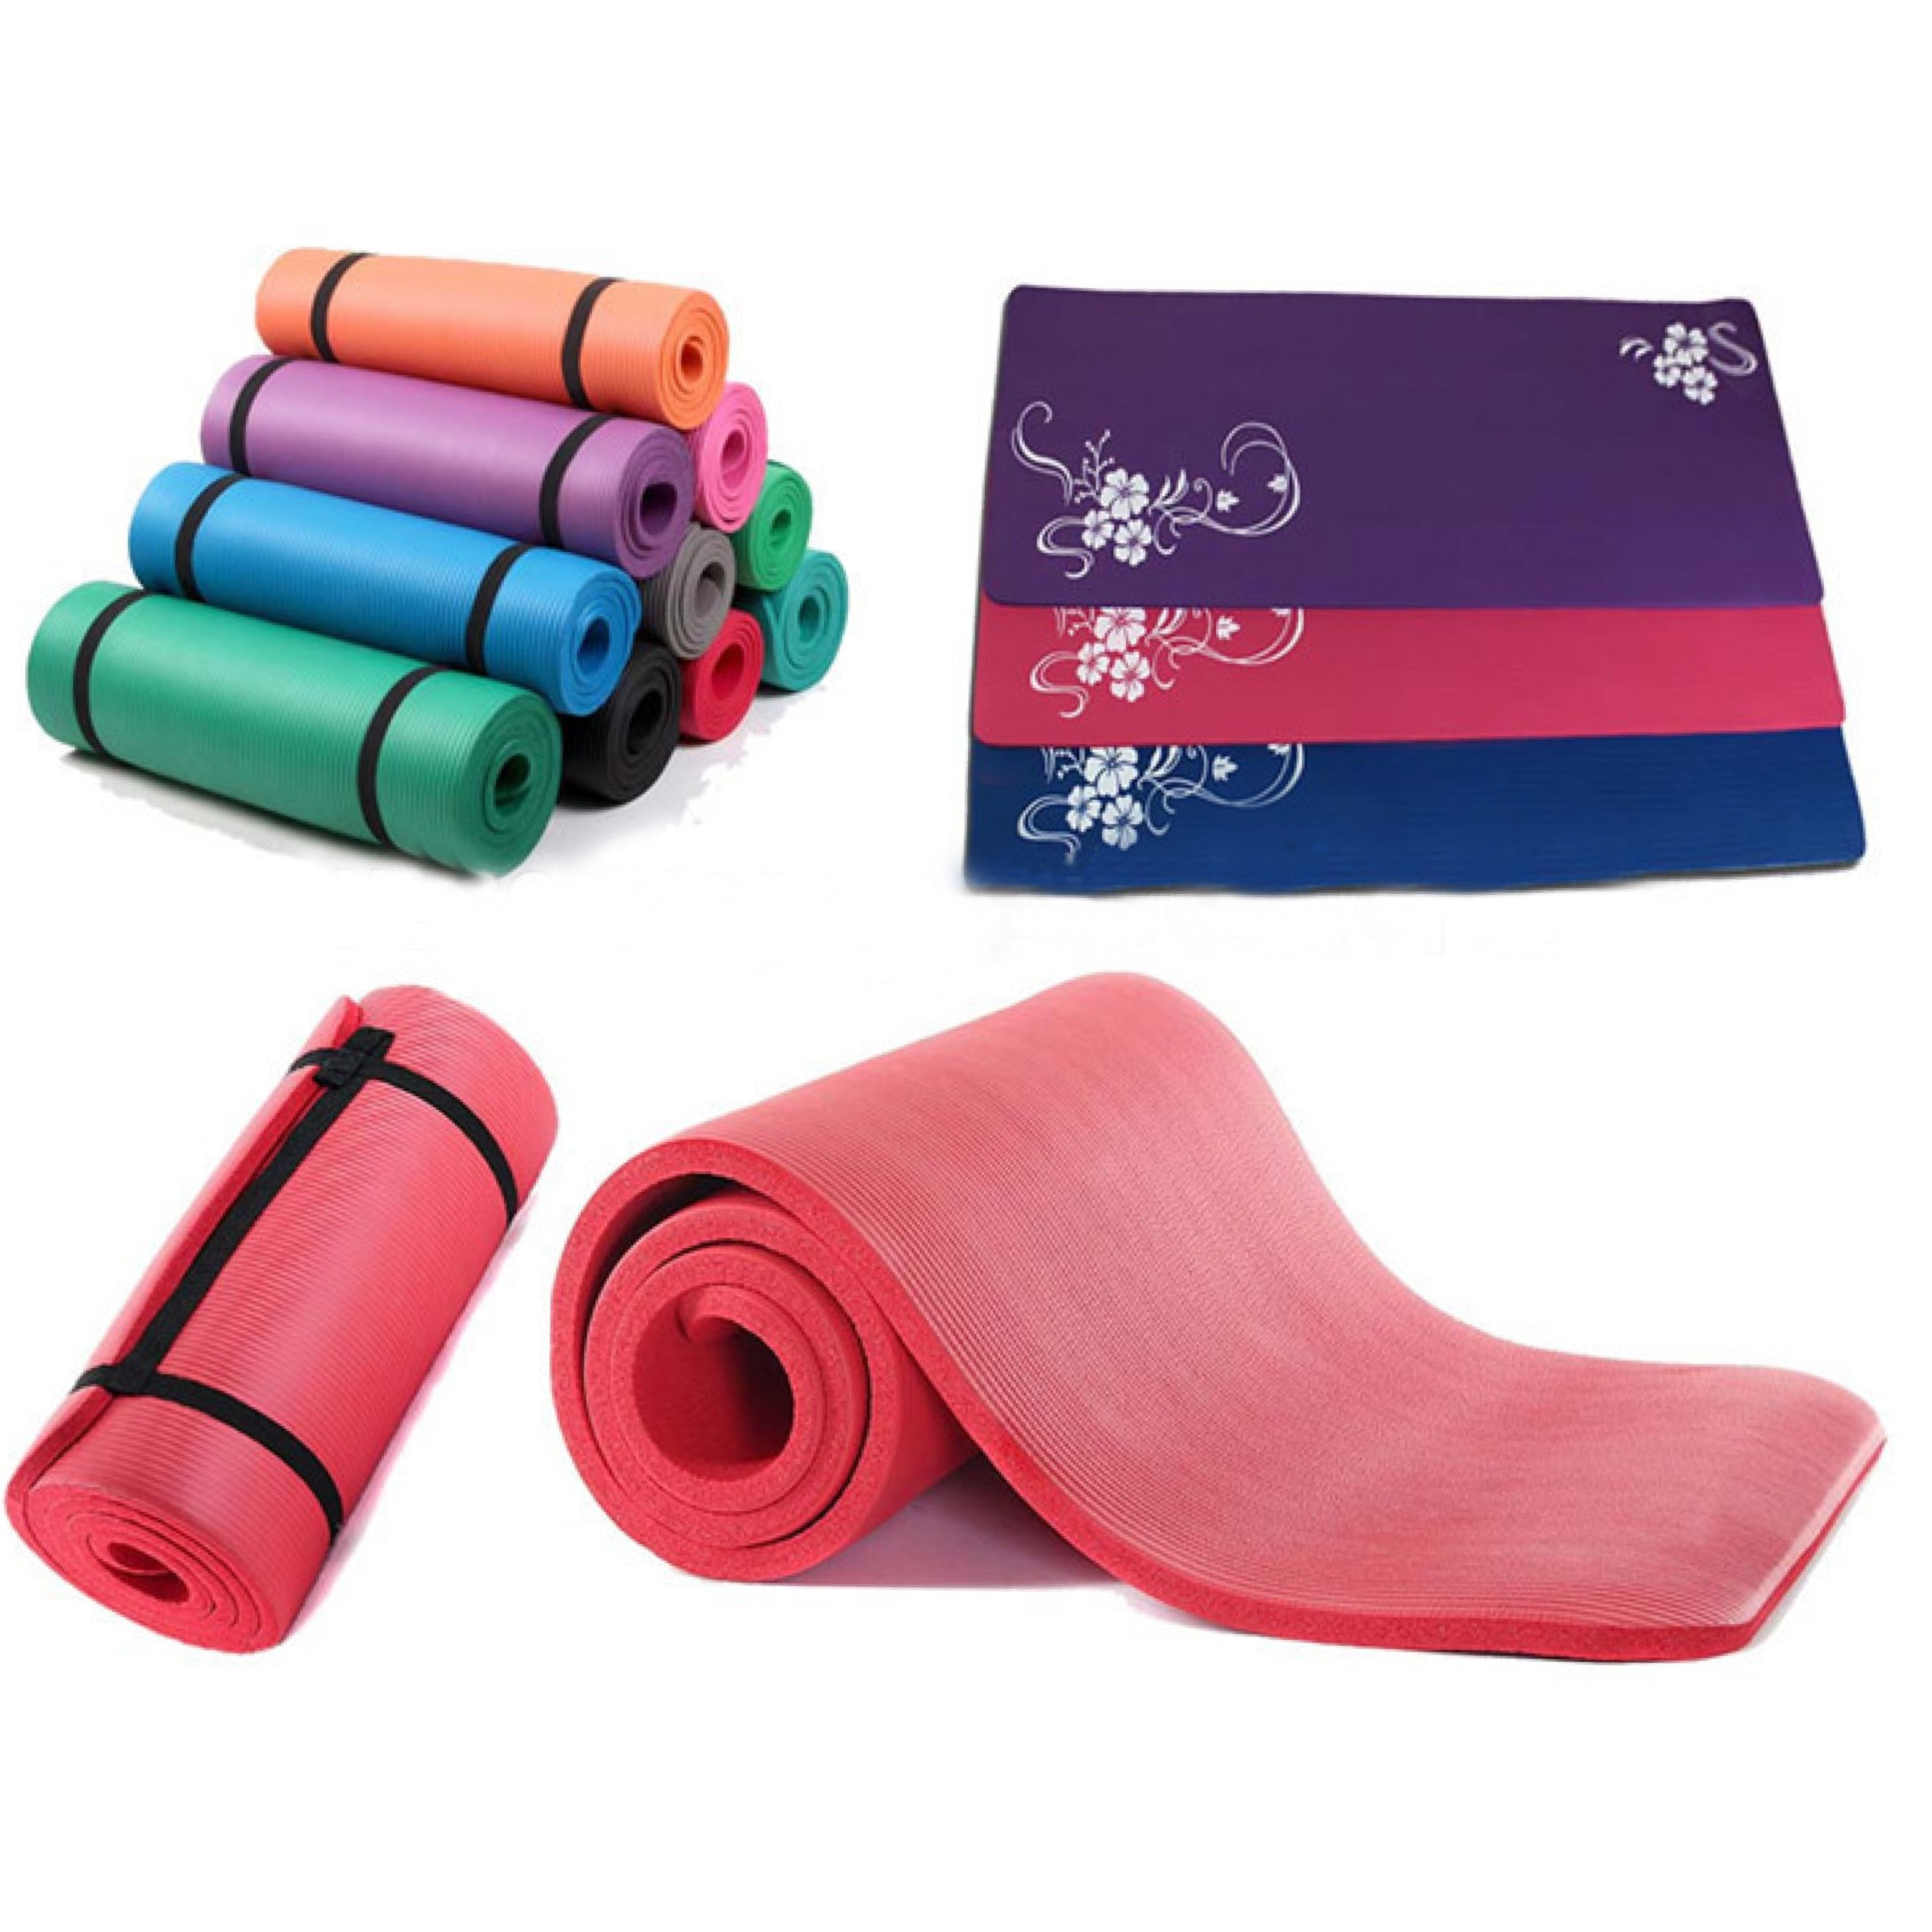 Hot selling nbr yoga mat brand yoga mat nbr materials for fitness and yoga